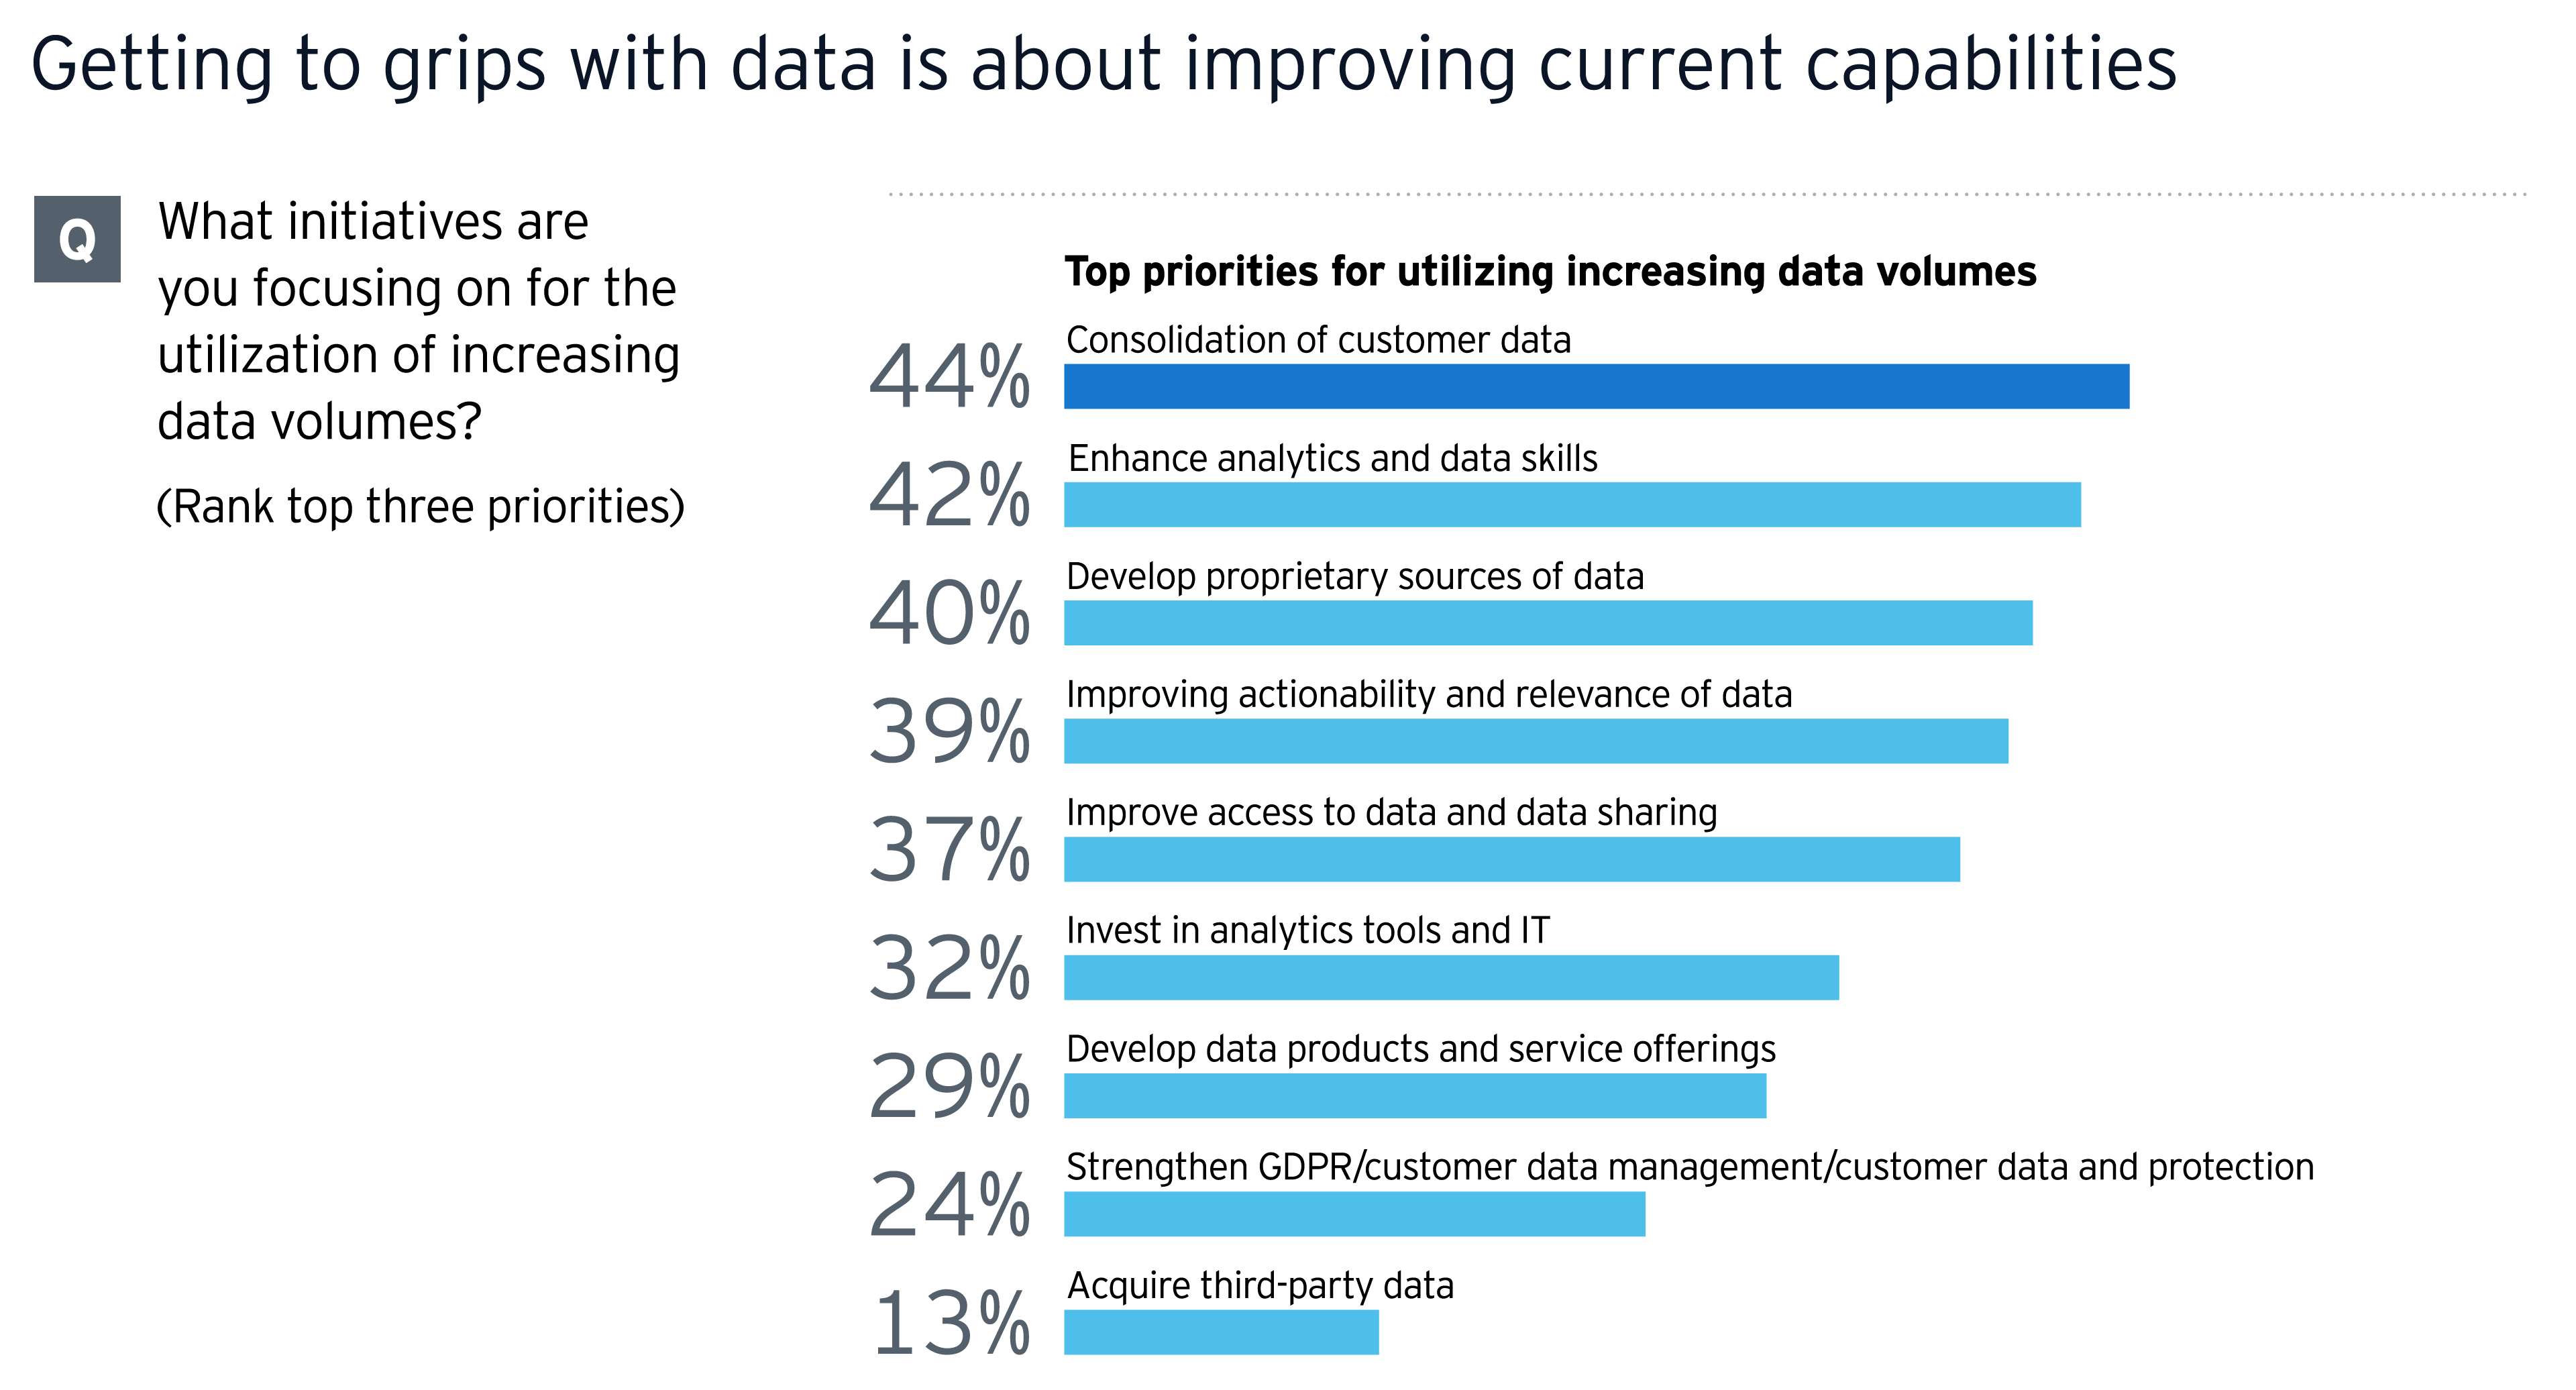 Getting to grips  with data is about improving current capabilities